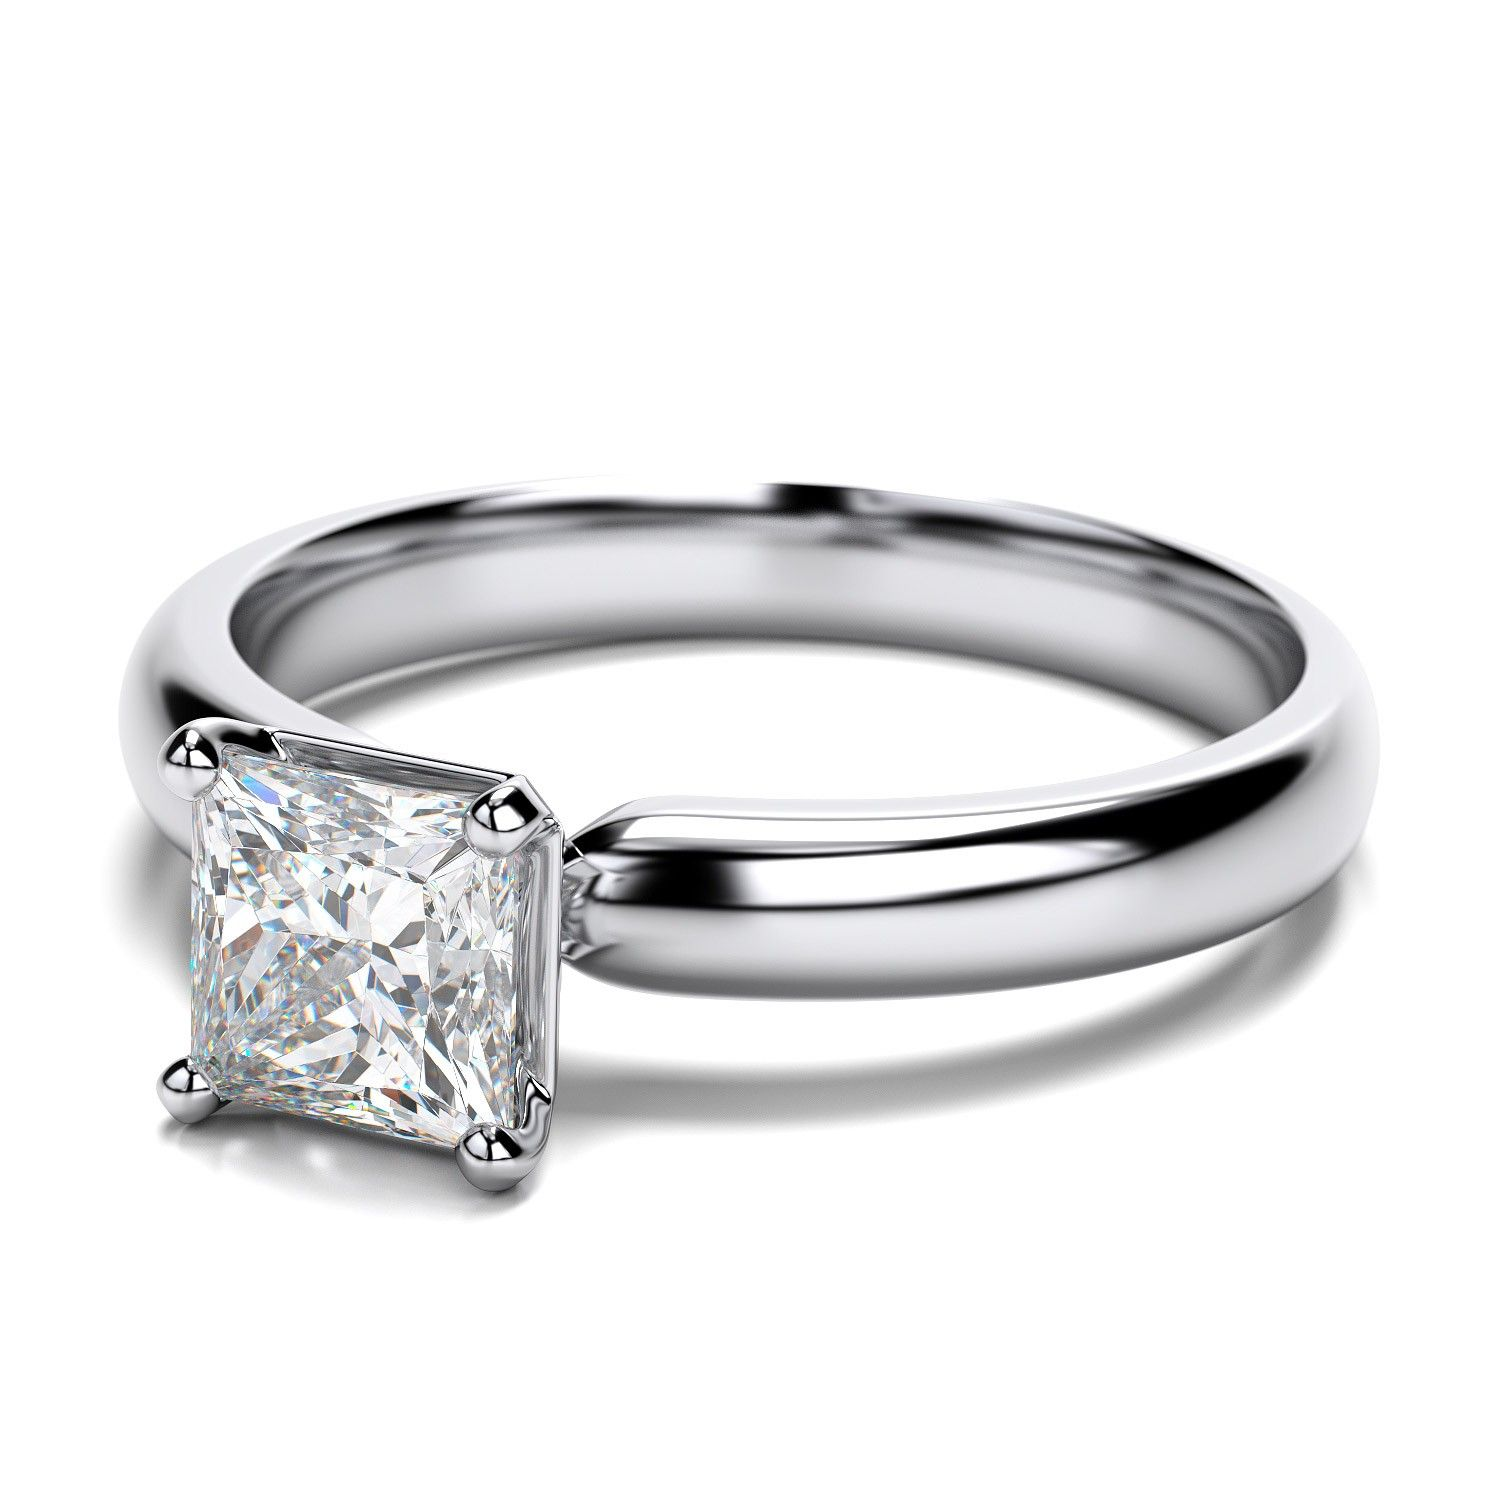 Traditional Princess Cut Diamond Engagement Ring in Platinum